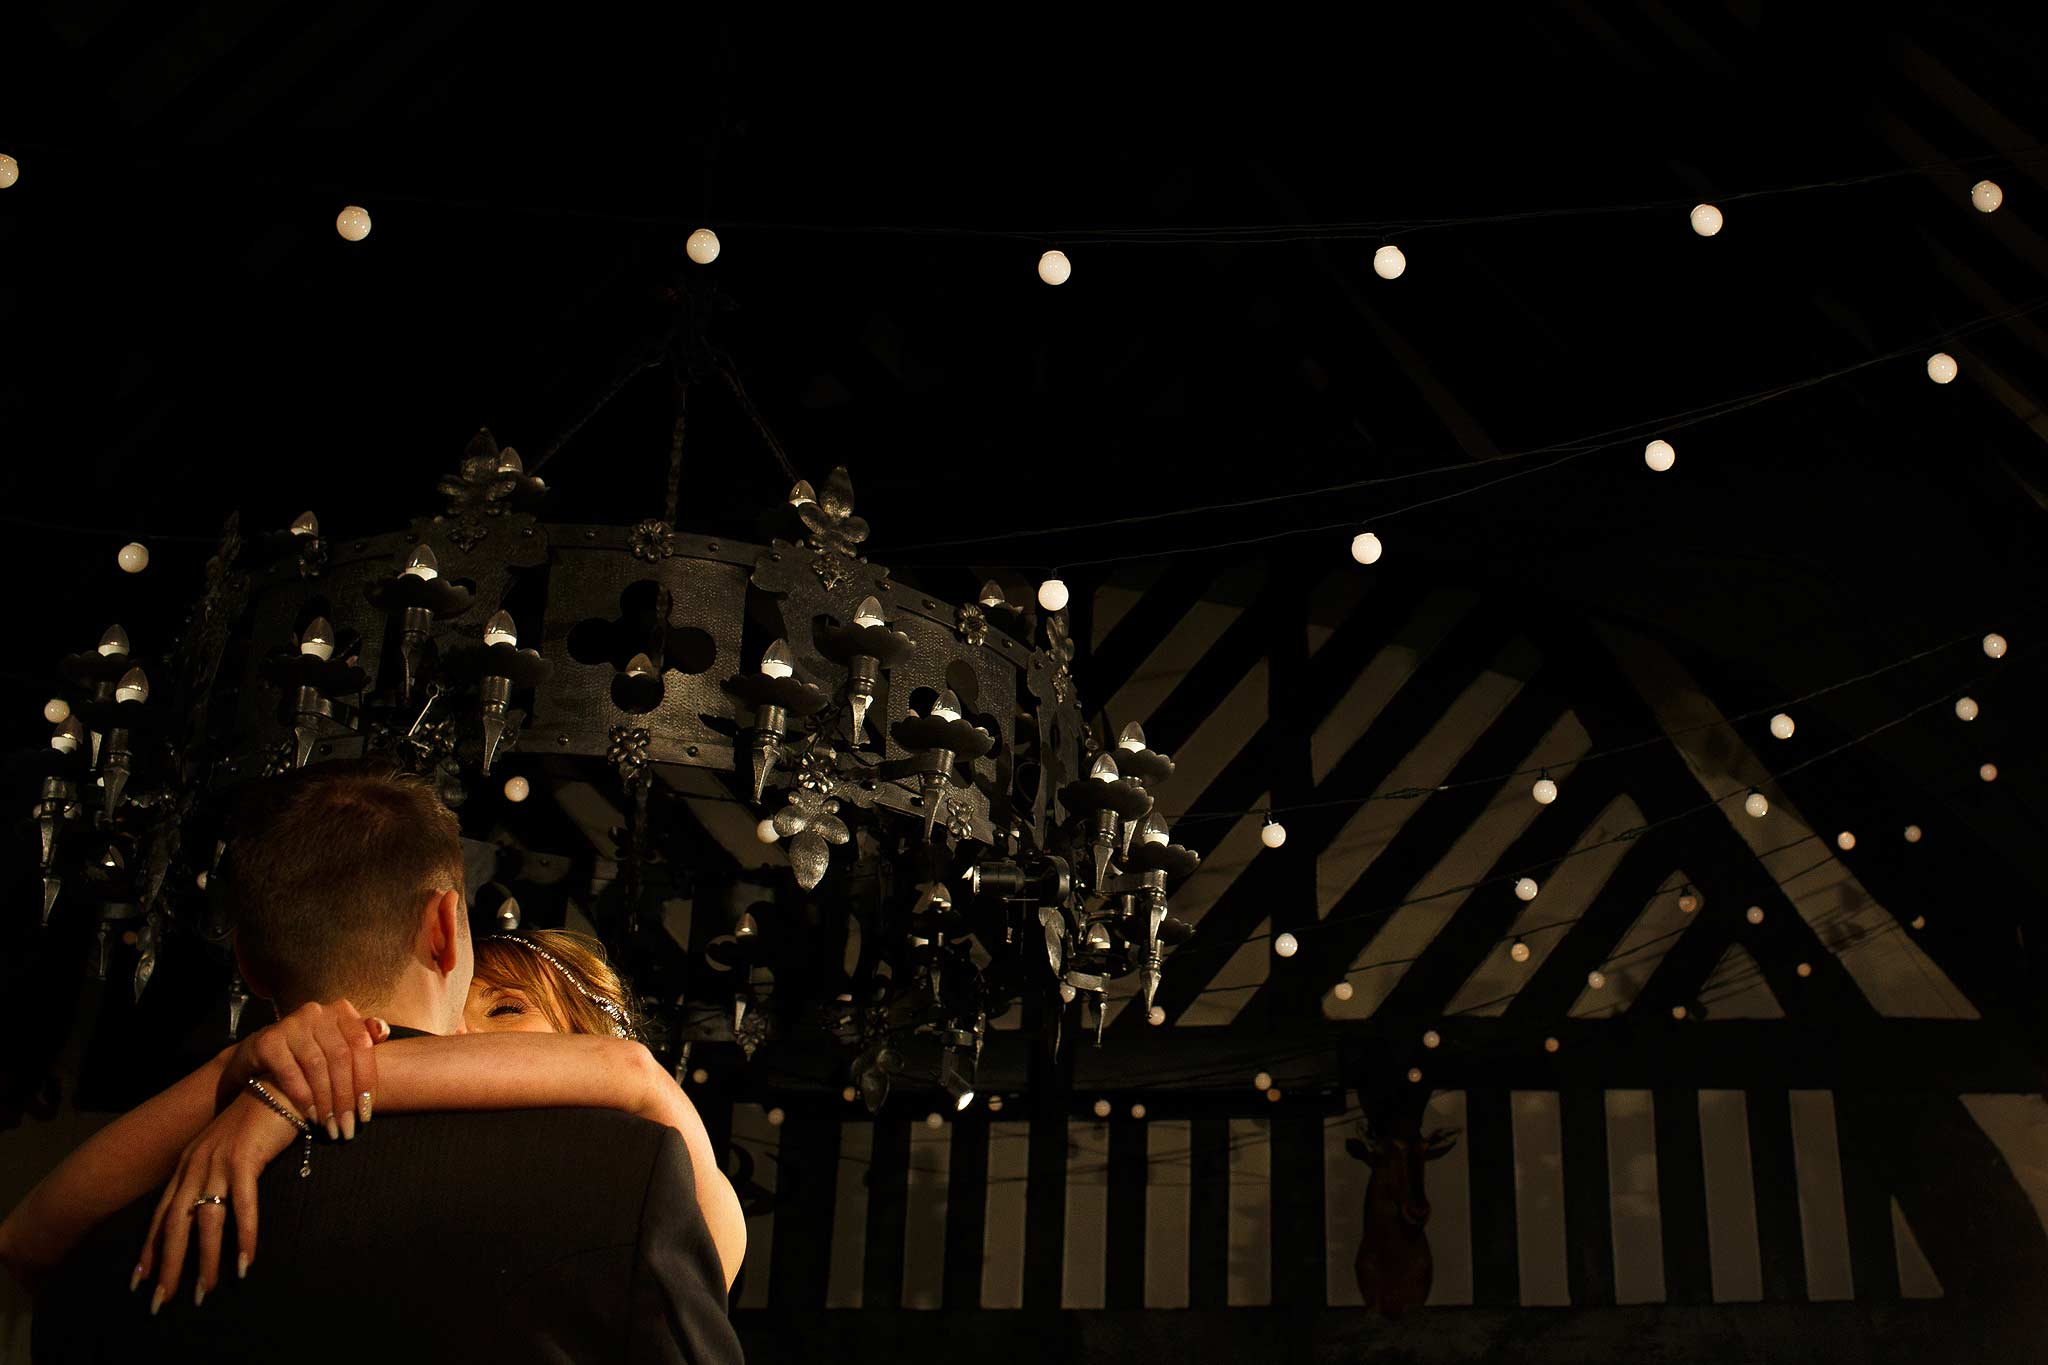 Photograph of the bride and groom during their first dance at Samlesbury Hall showing off the lights on the ceiling